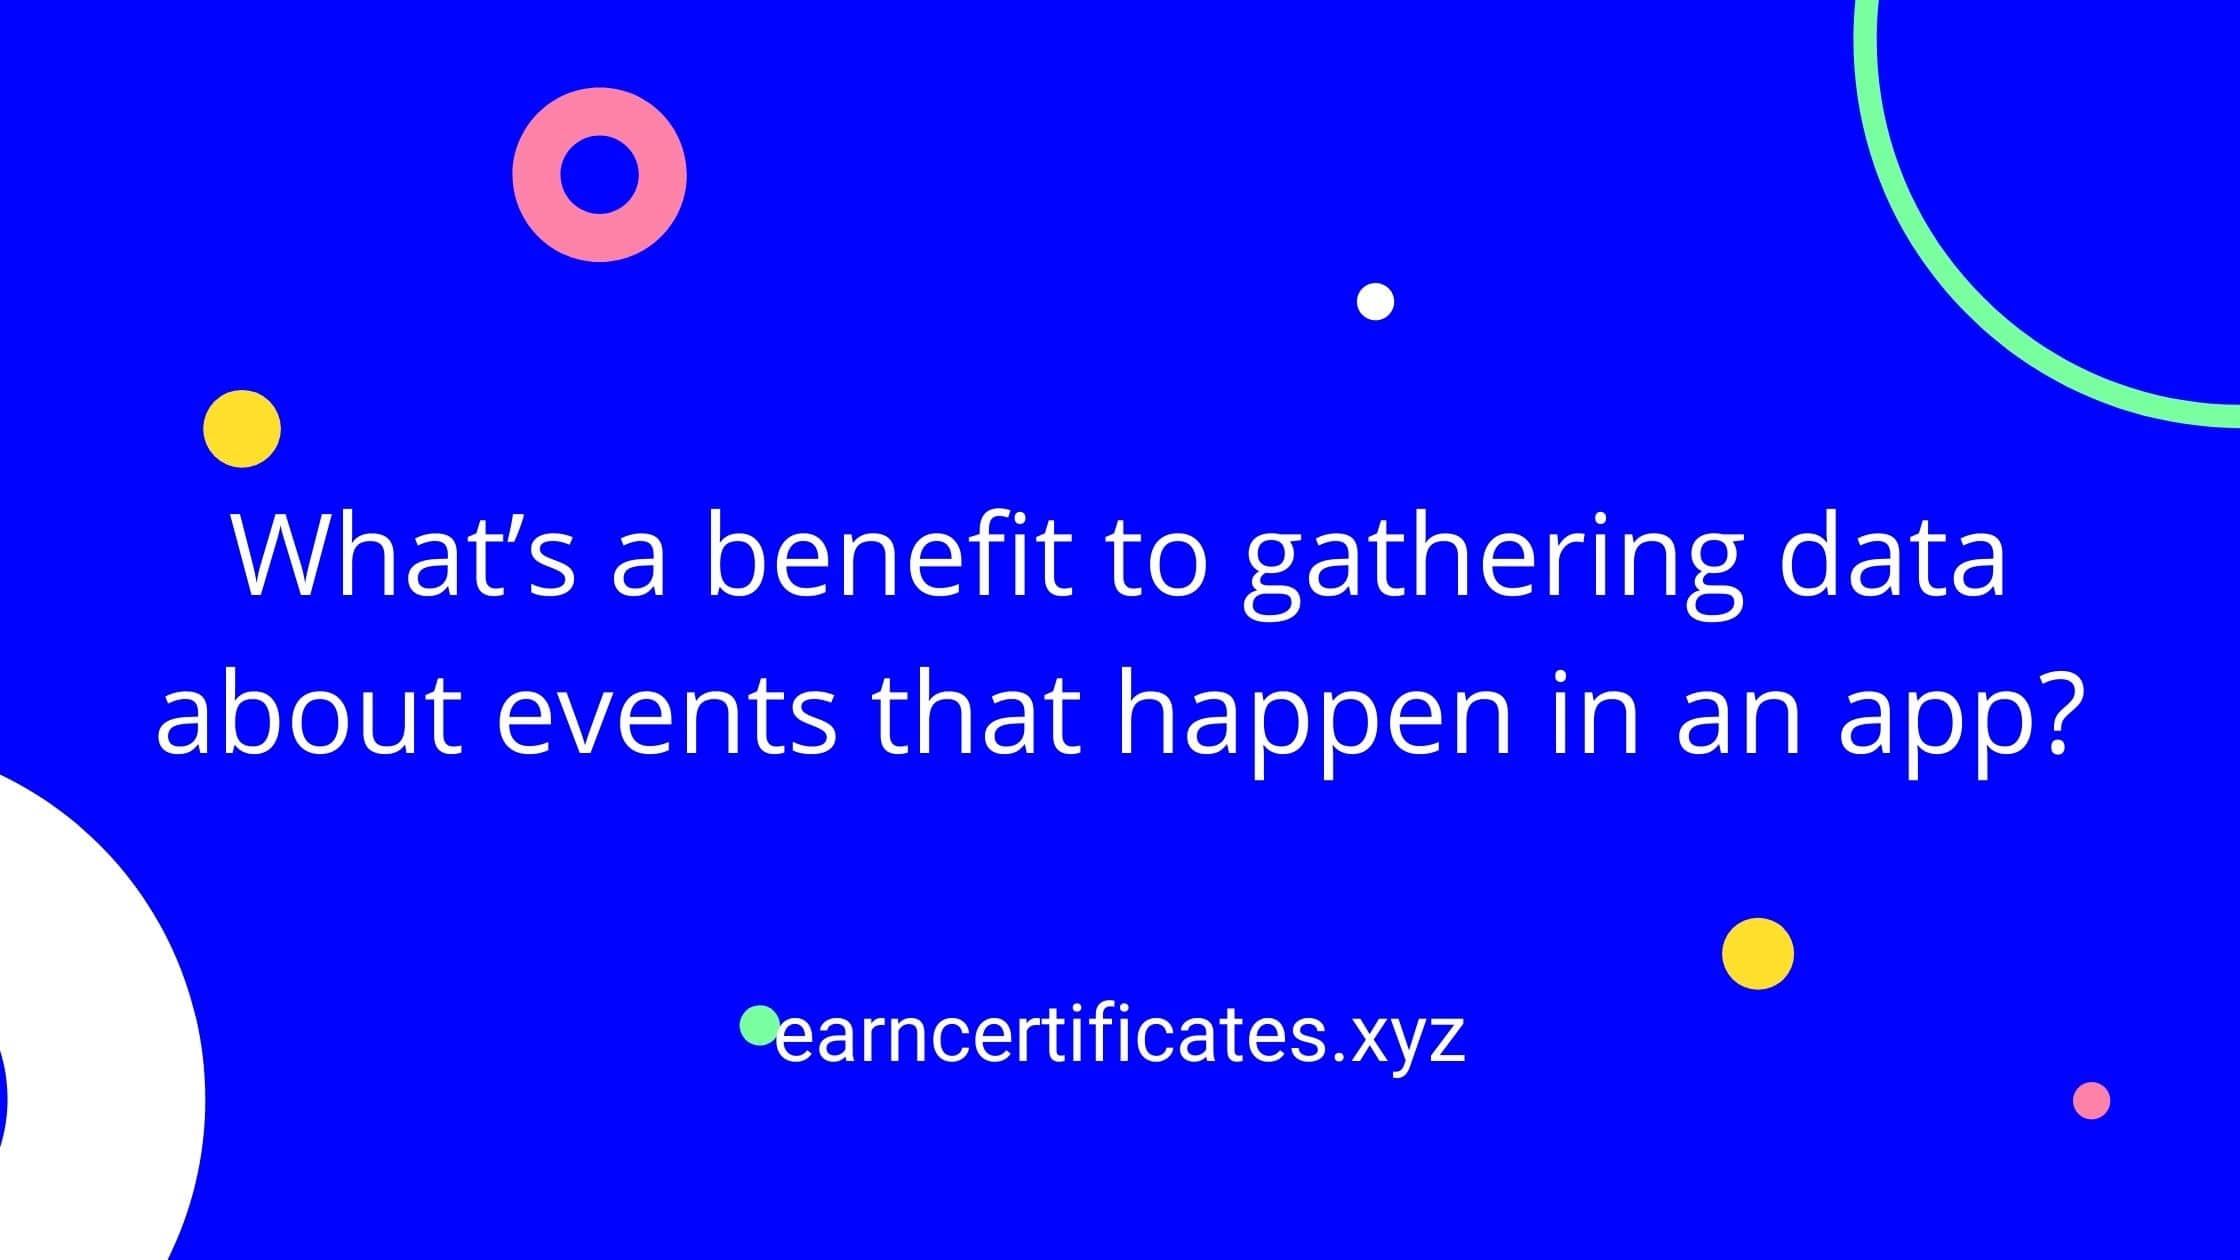 What's a benefit to gathering data about events that happen in an app?